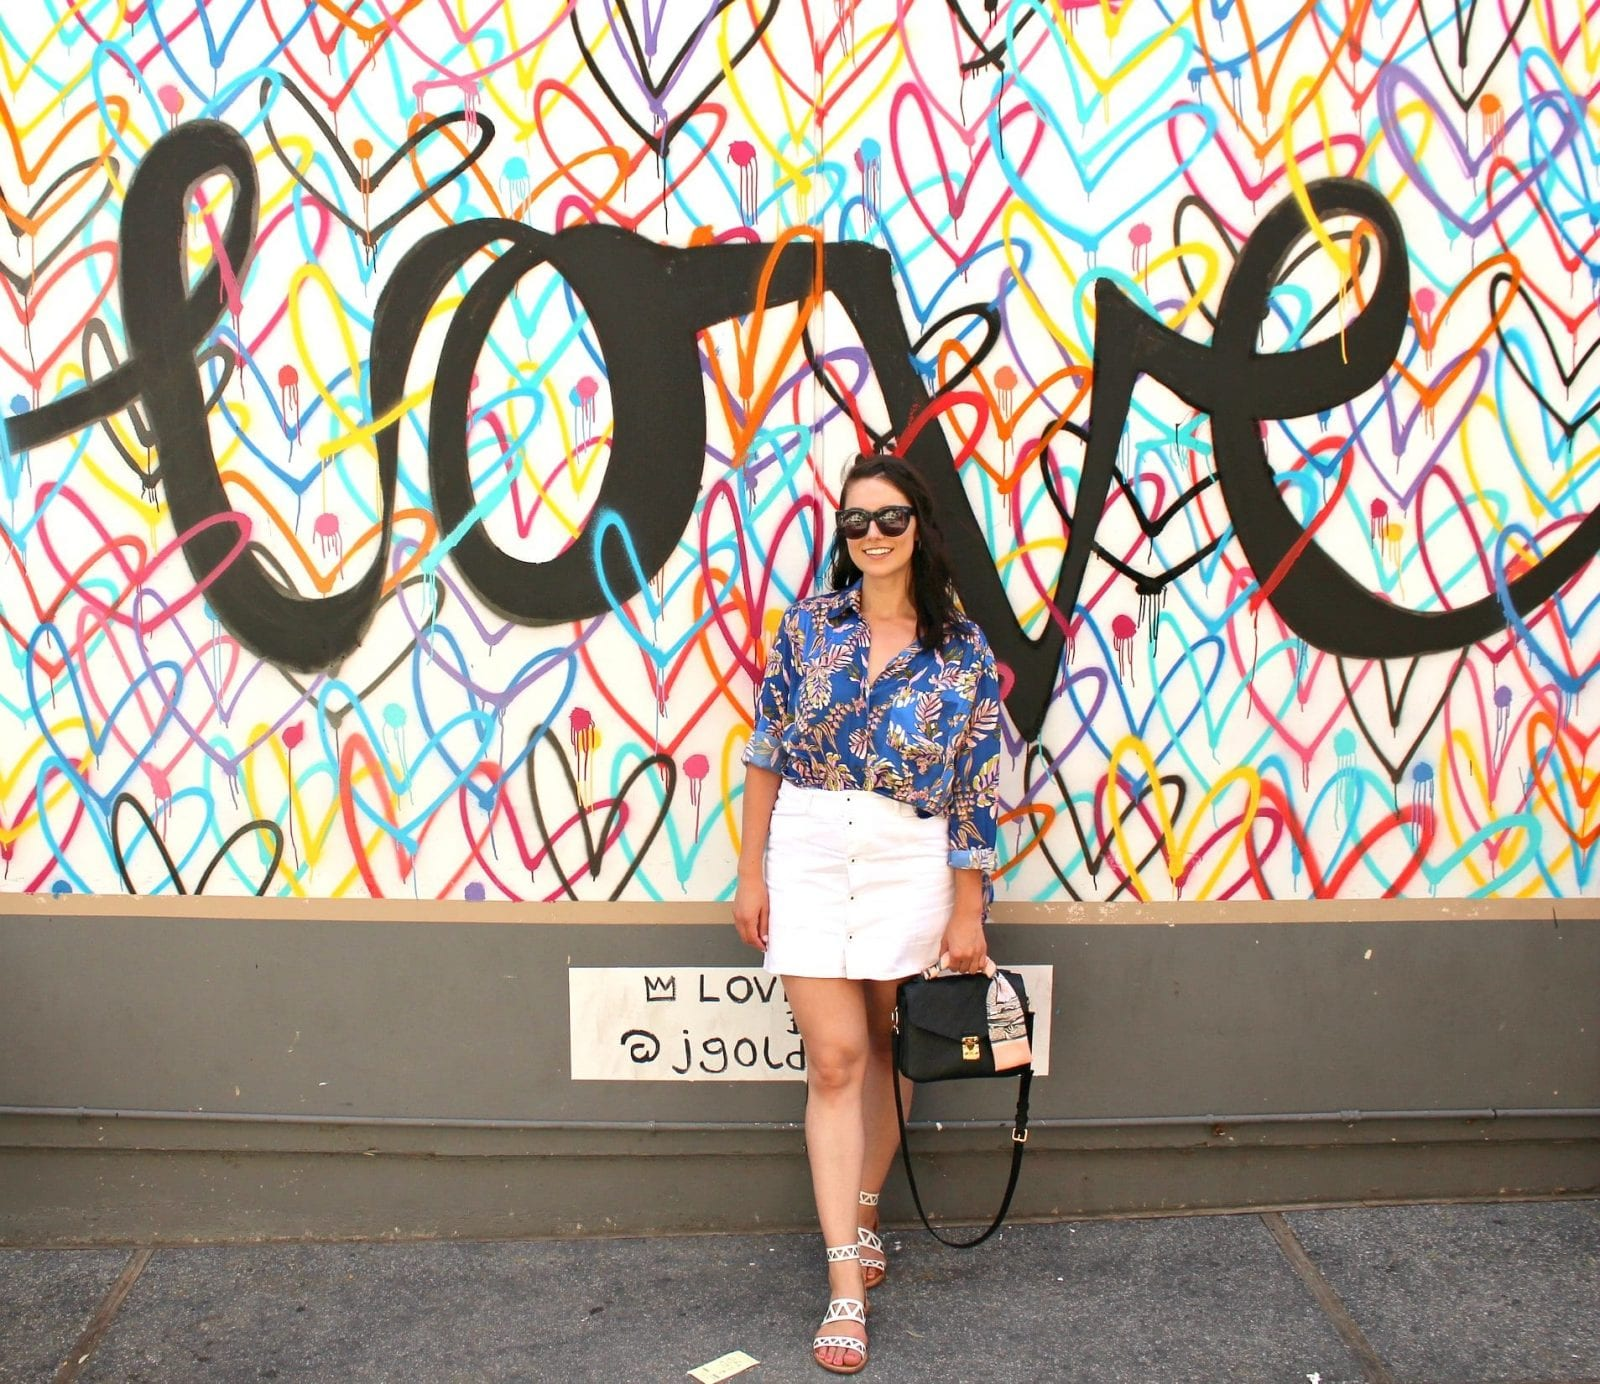 Sharing my thoughts on what it is bloggers do, with a full body shot.